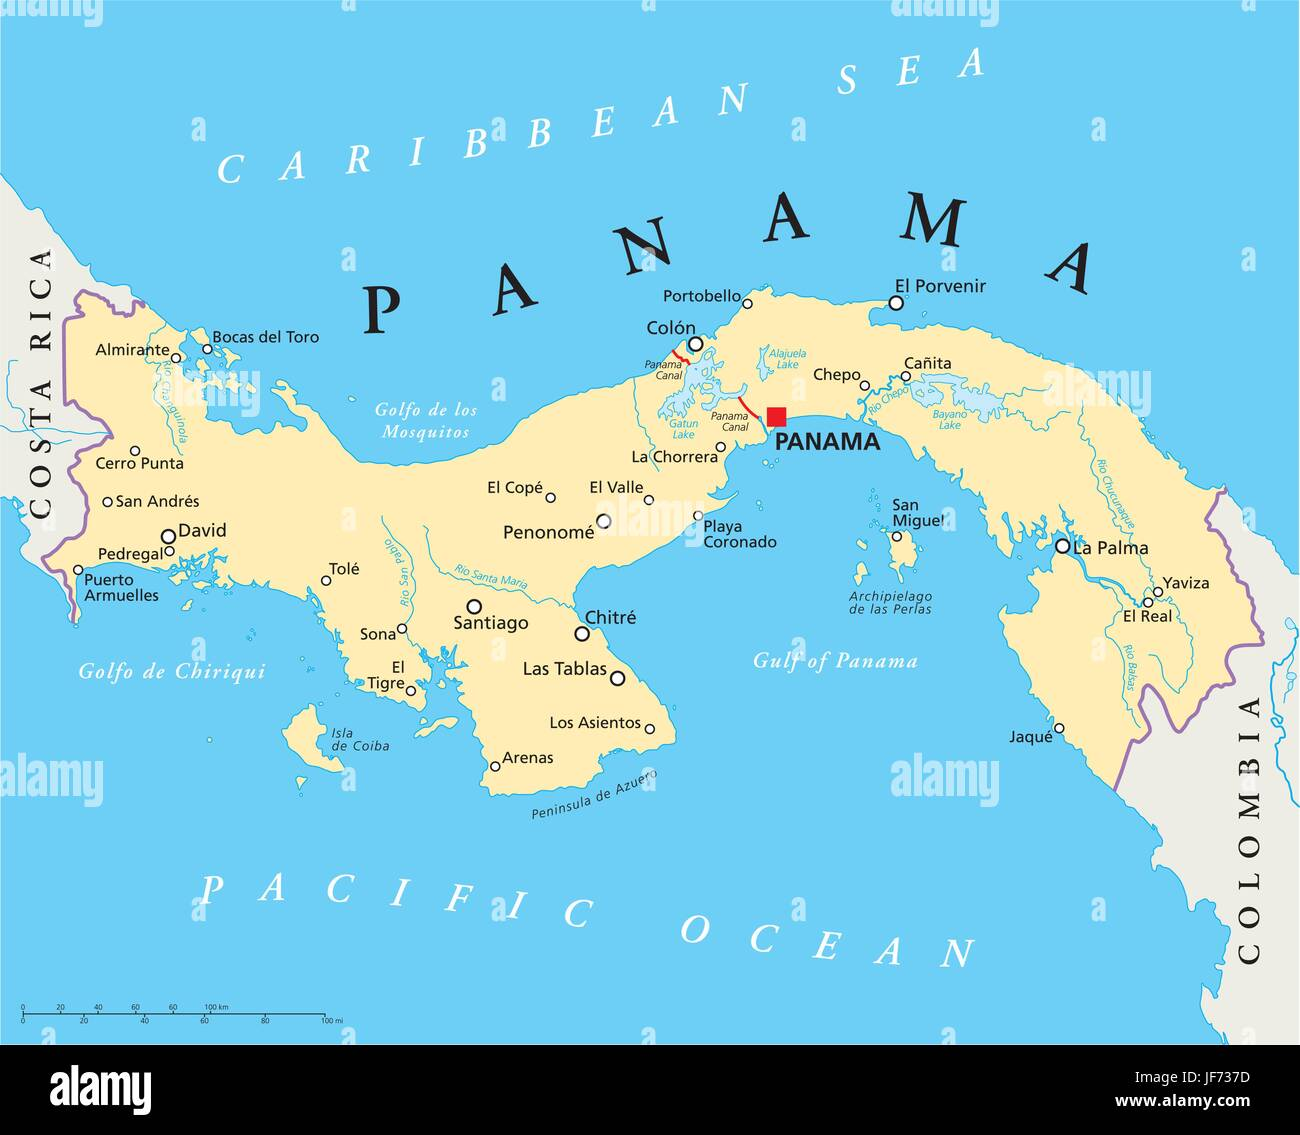 Route Panama Canal Map Shipping Atlas Map Of The World Colon